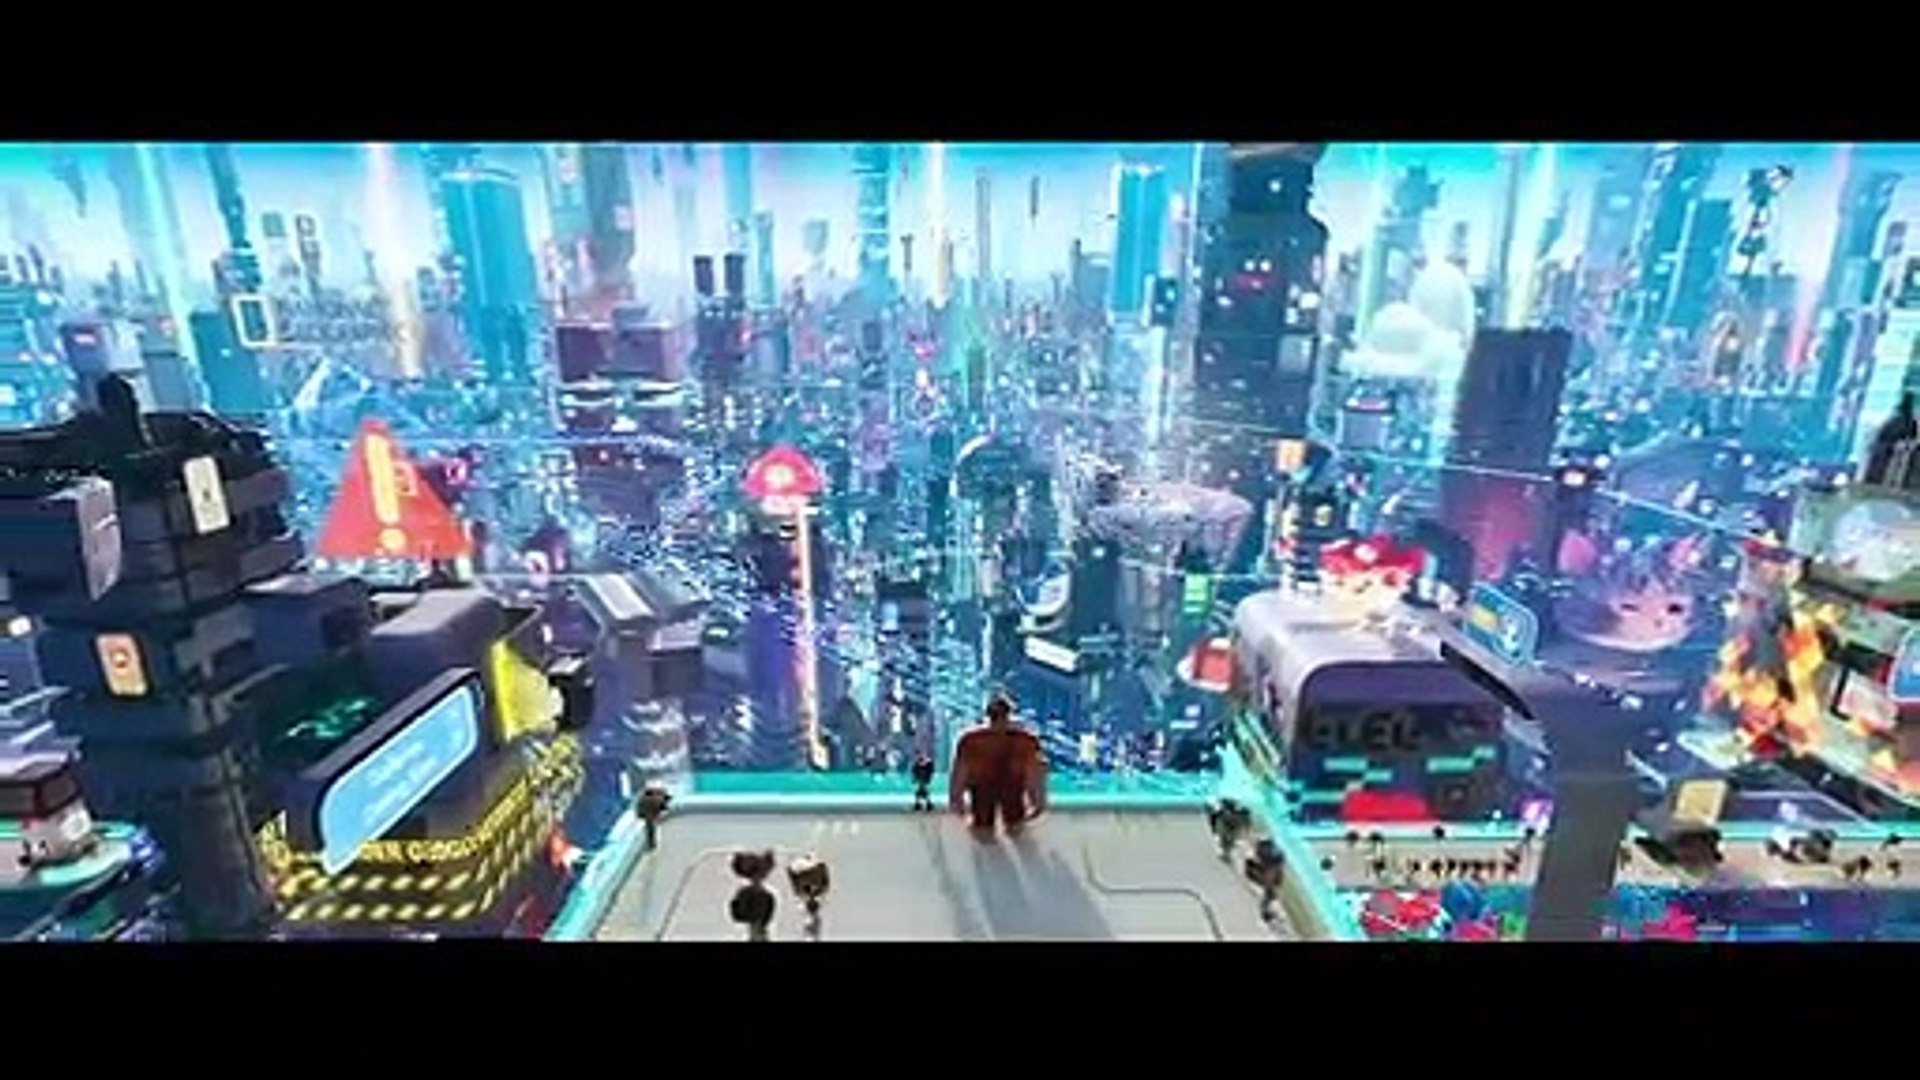 Ralph Breaks the Internet  International Trailer (2018) - Movieclips Trailers